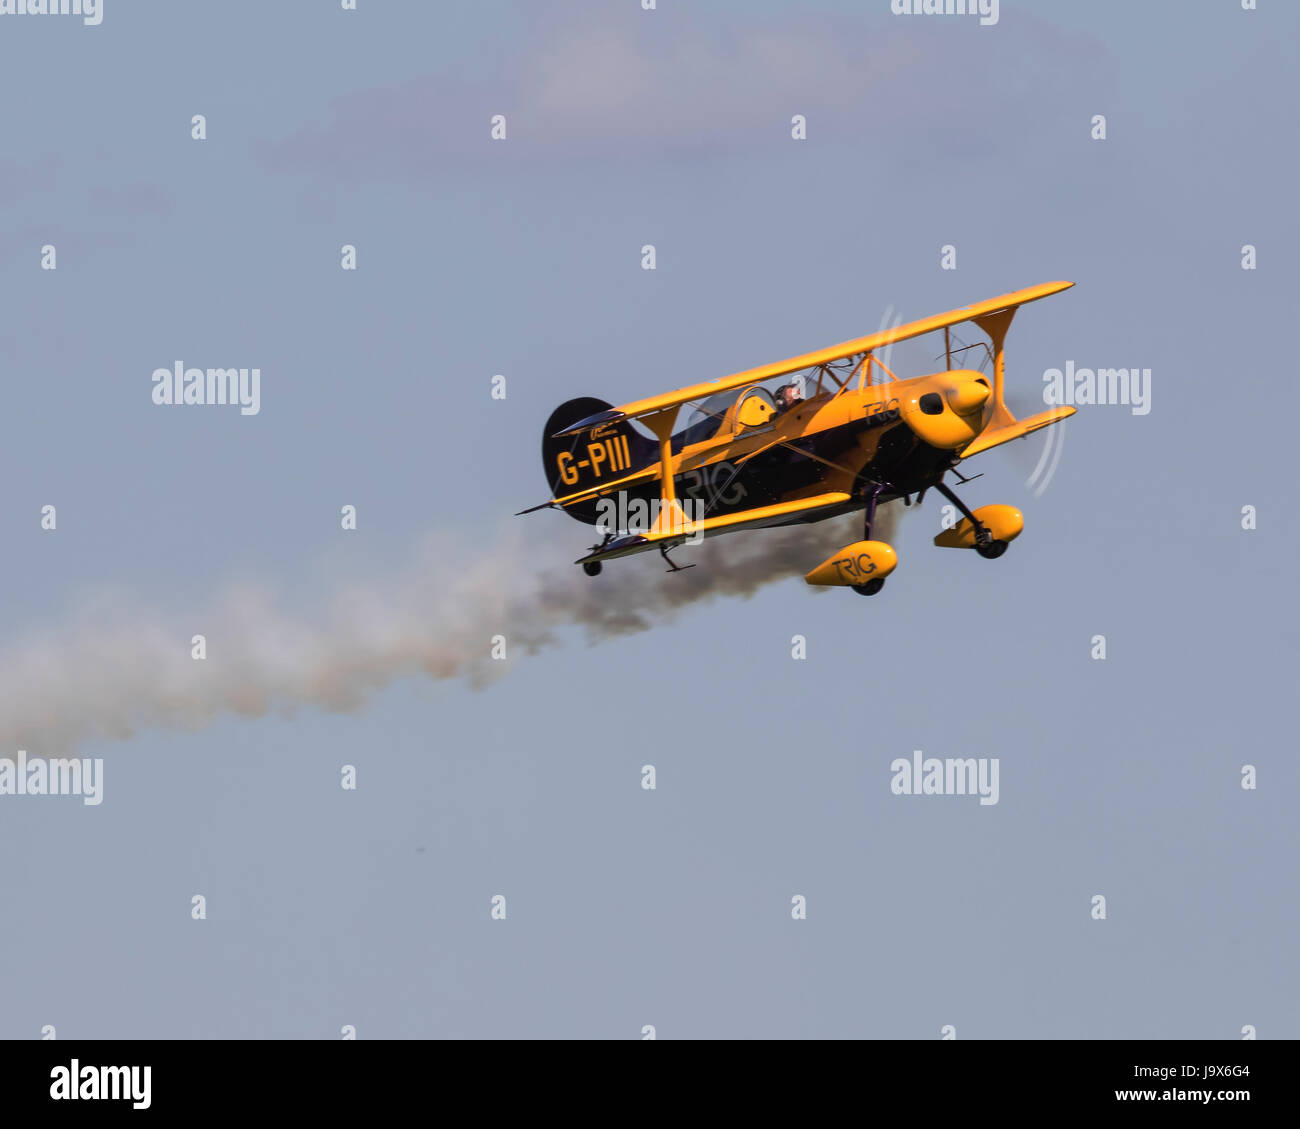 One of the two Pitts Special biplanes of the Trig Aerobatic Team at a Duxford AIr Show - Stock Image